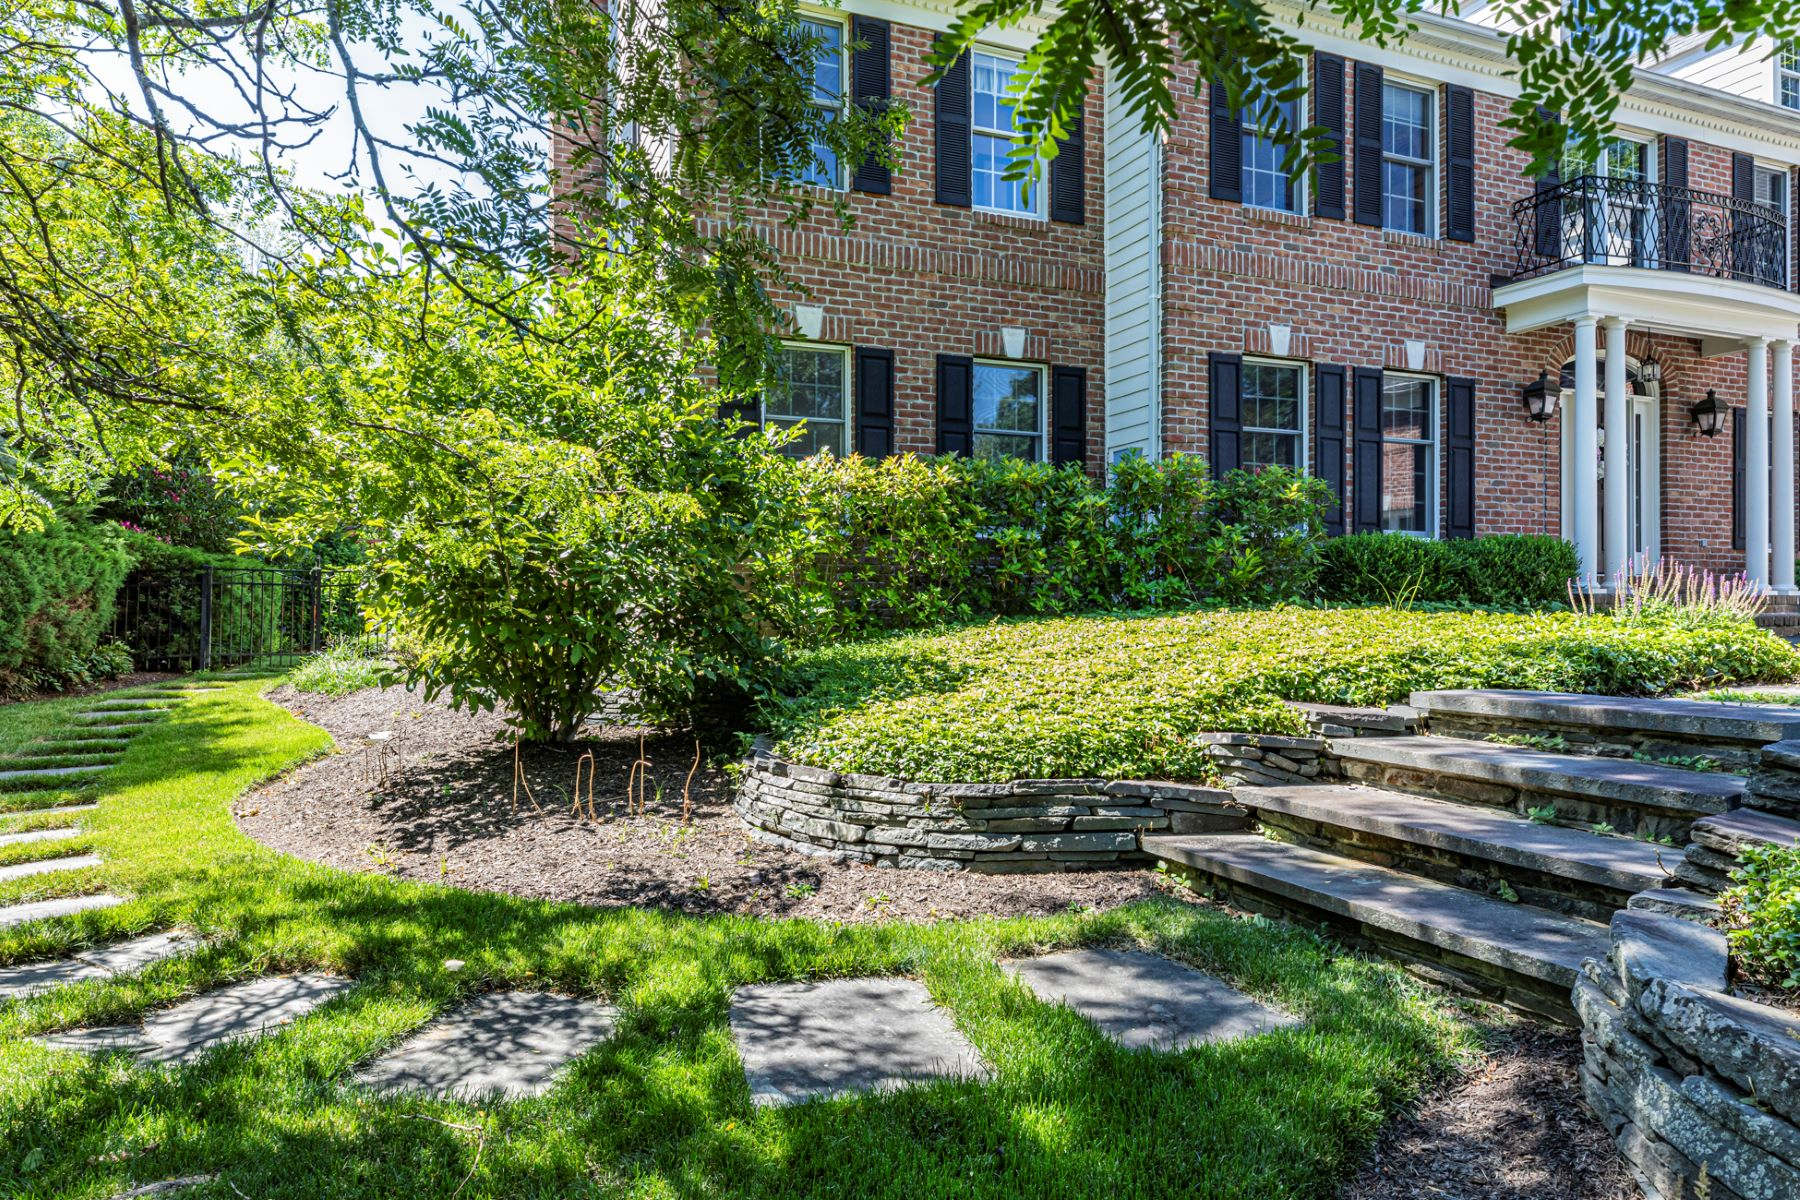 Additional photo for property listing at Luxury, Livability, and an Incomparable Backyard 129 Stone Cliff Road, Princeton, New Jersey 08540 United States